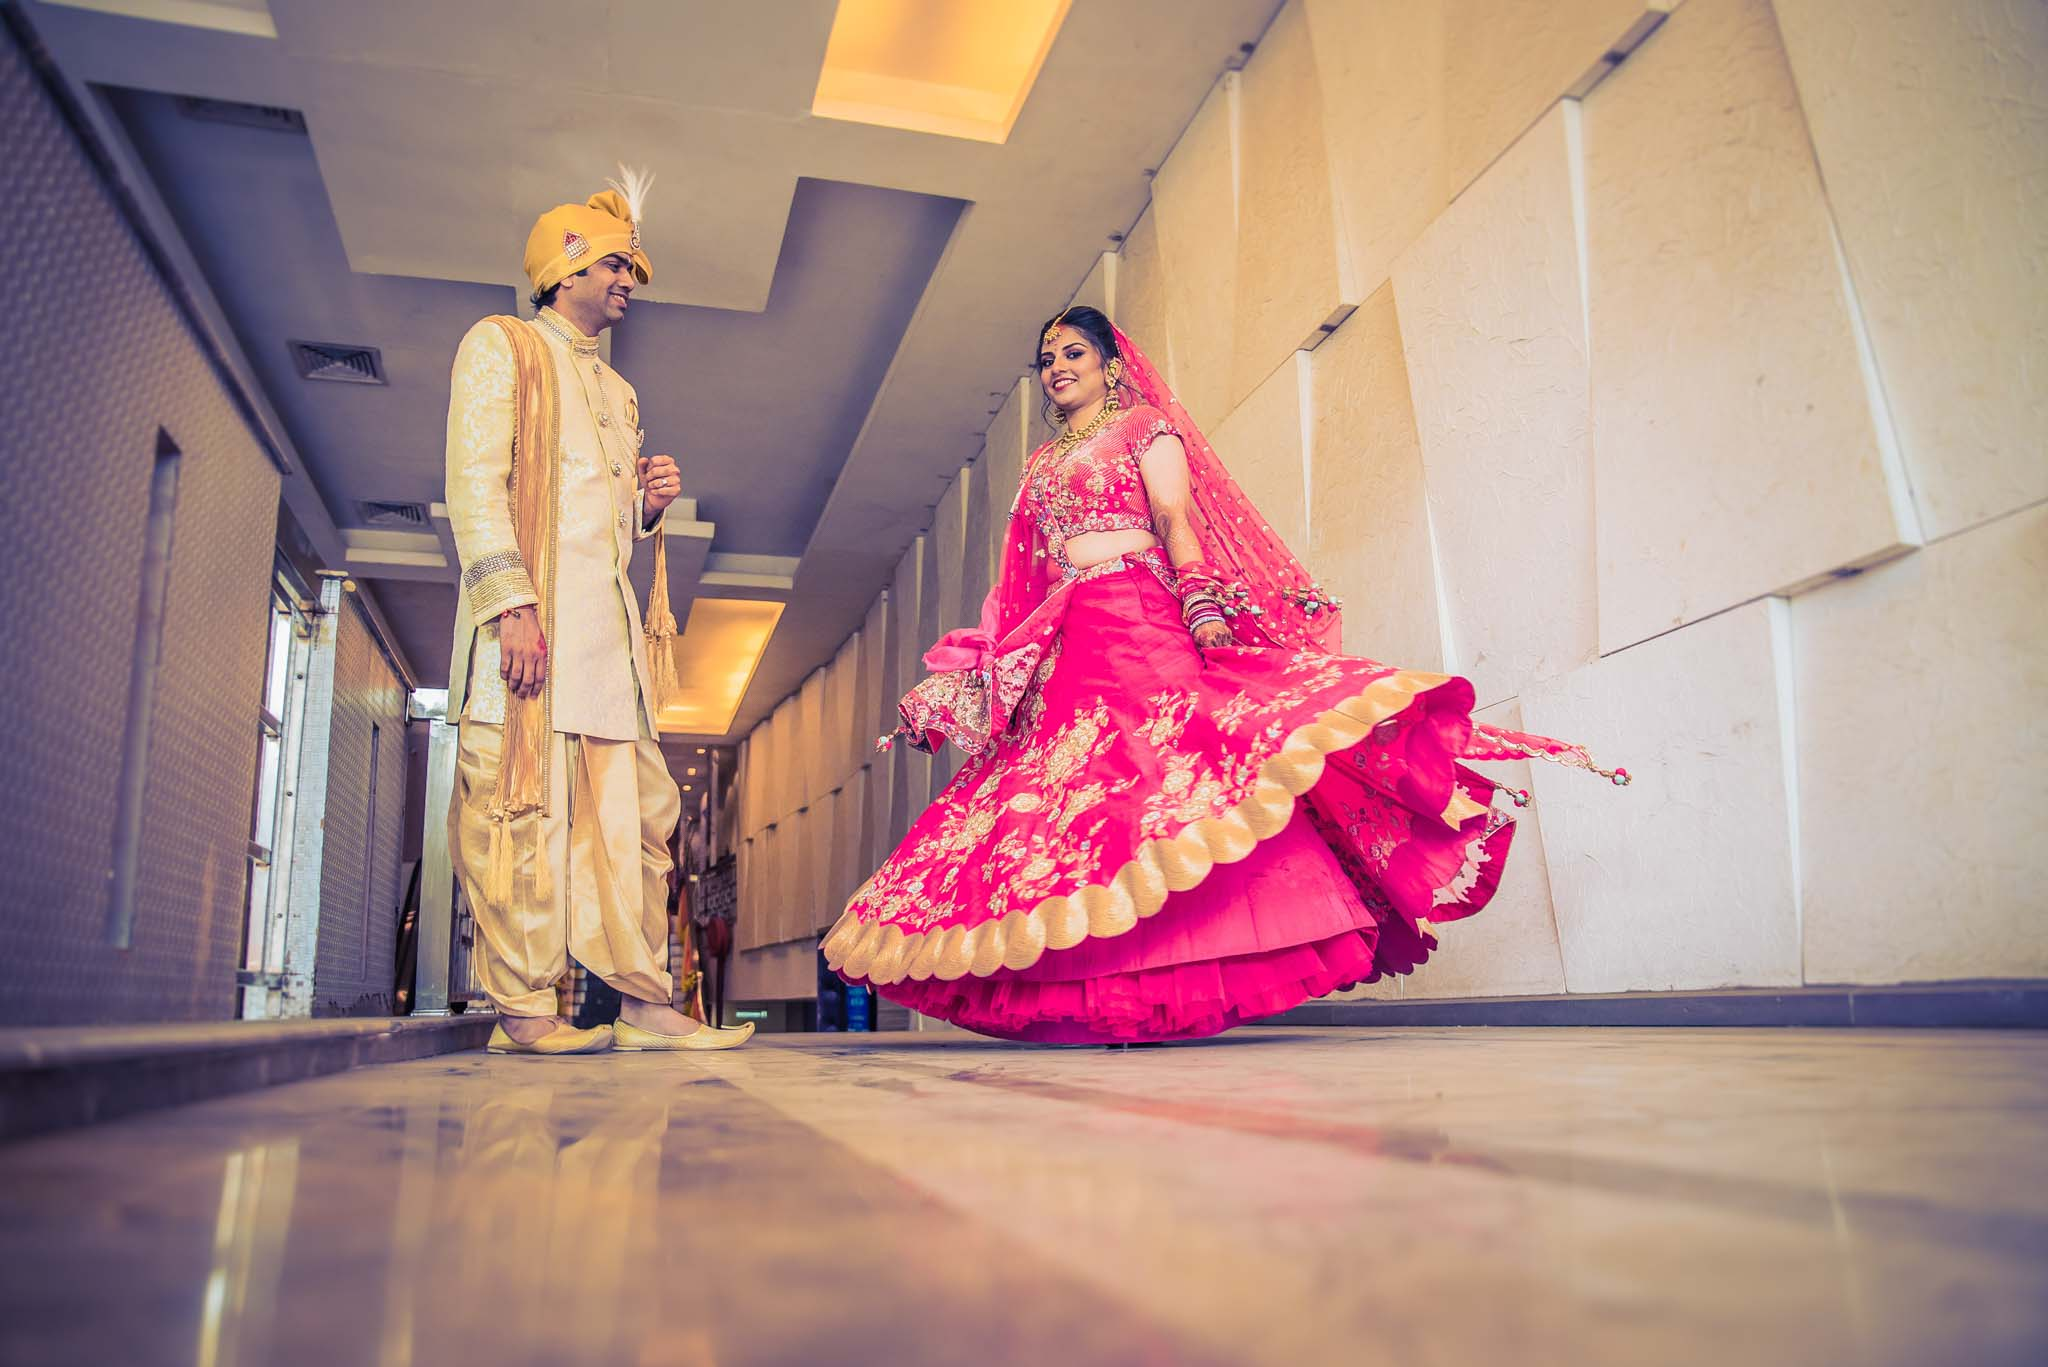 Candid-Wedding-Photography-Nagpur-Destination-95